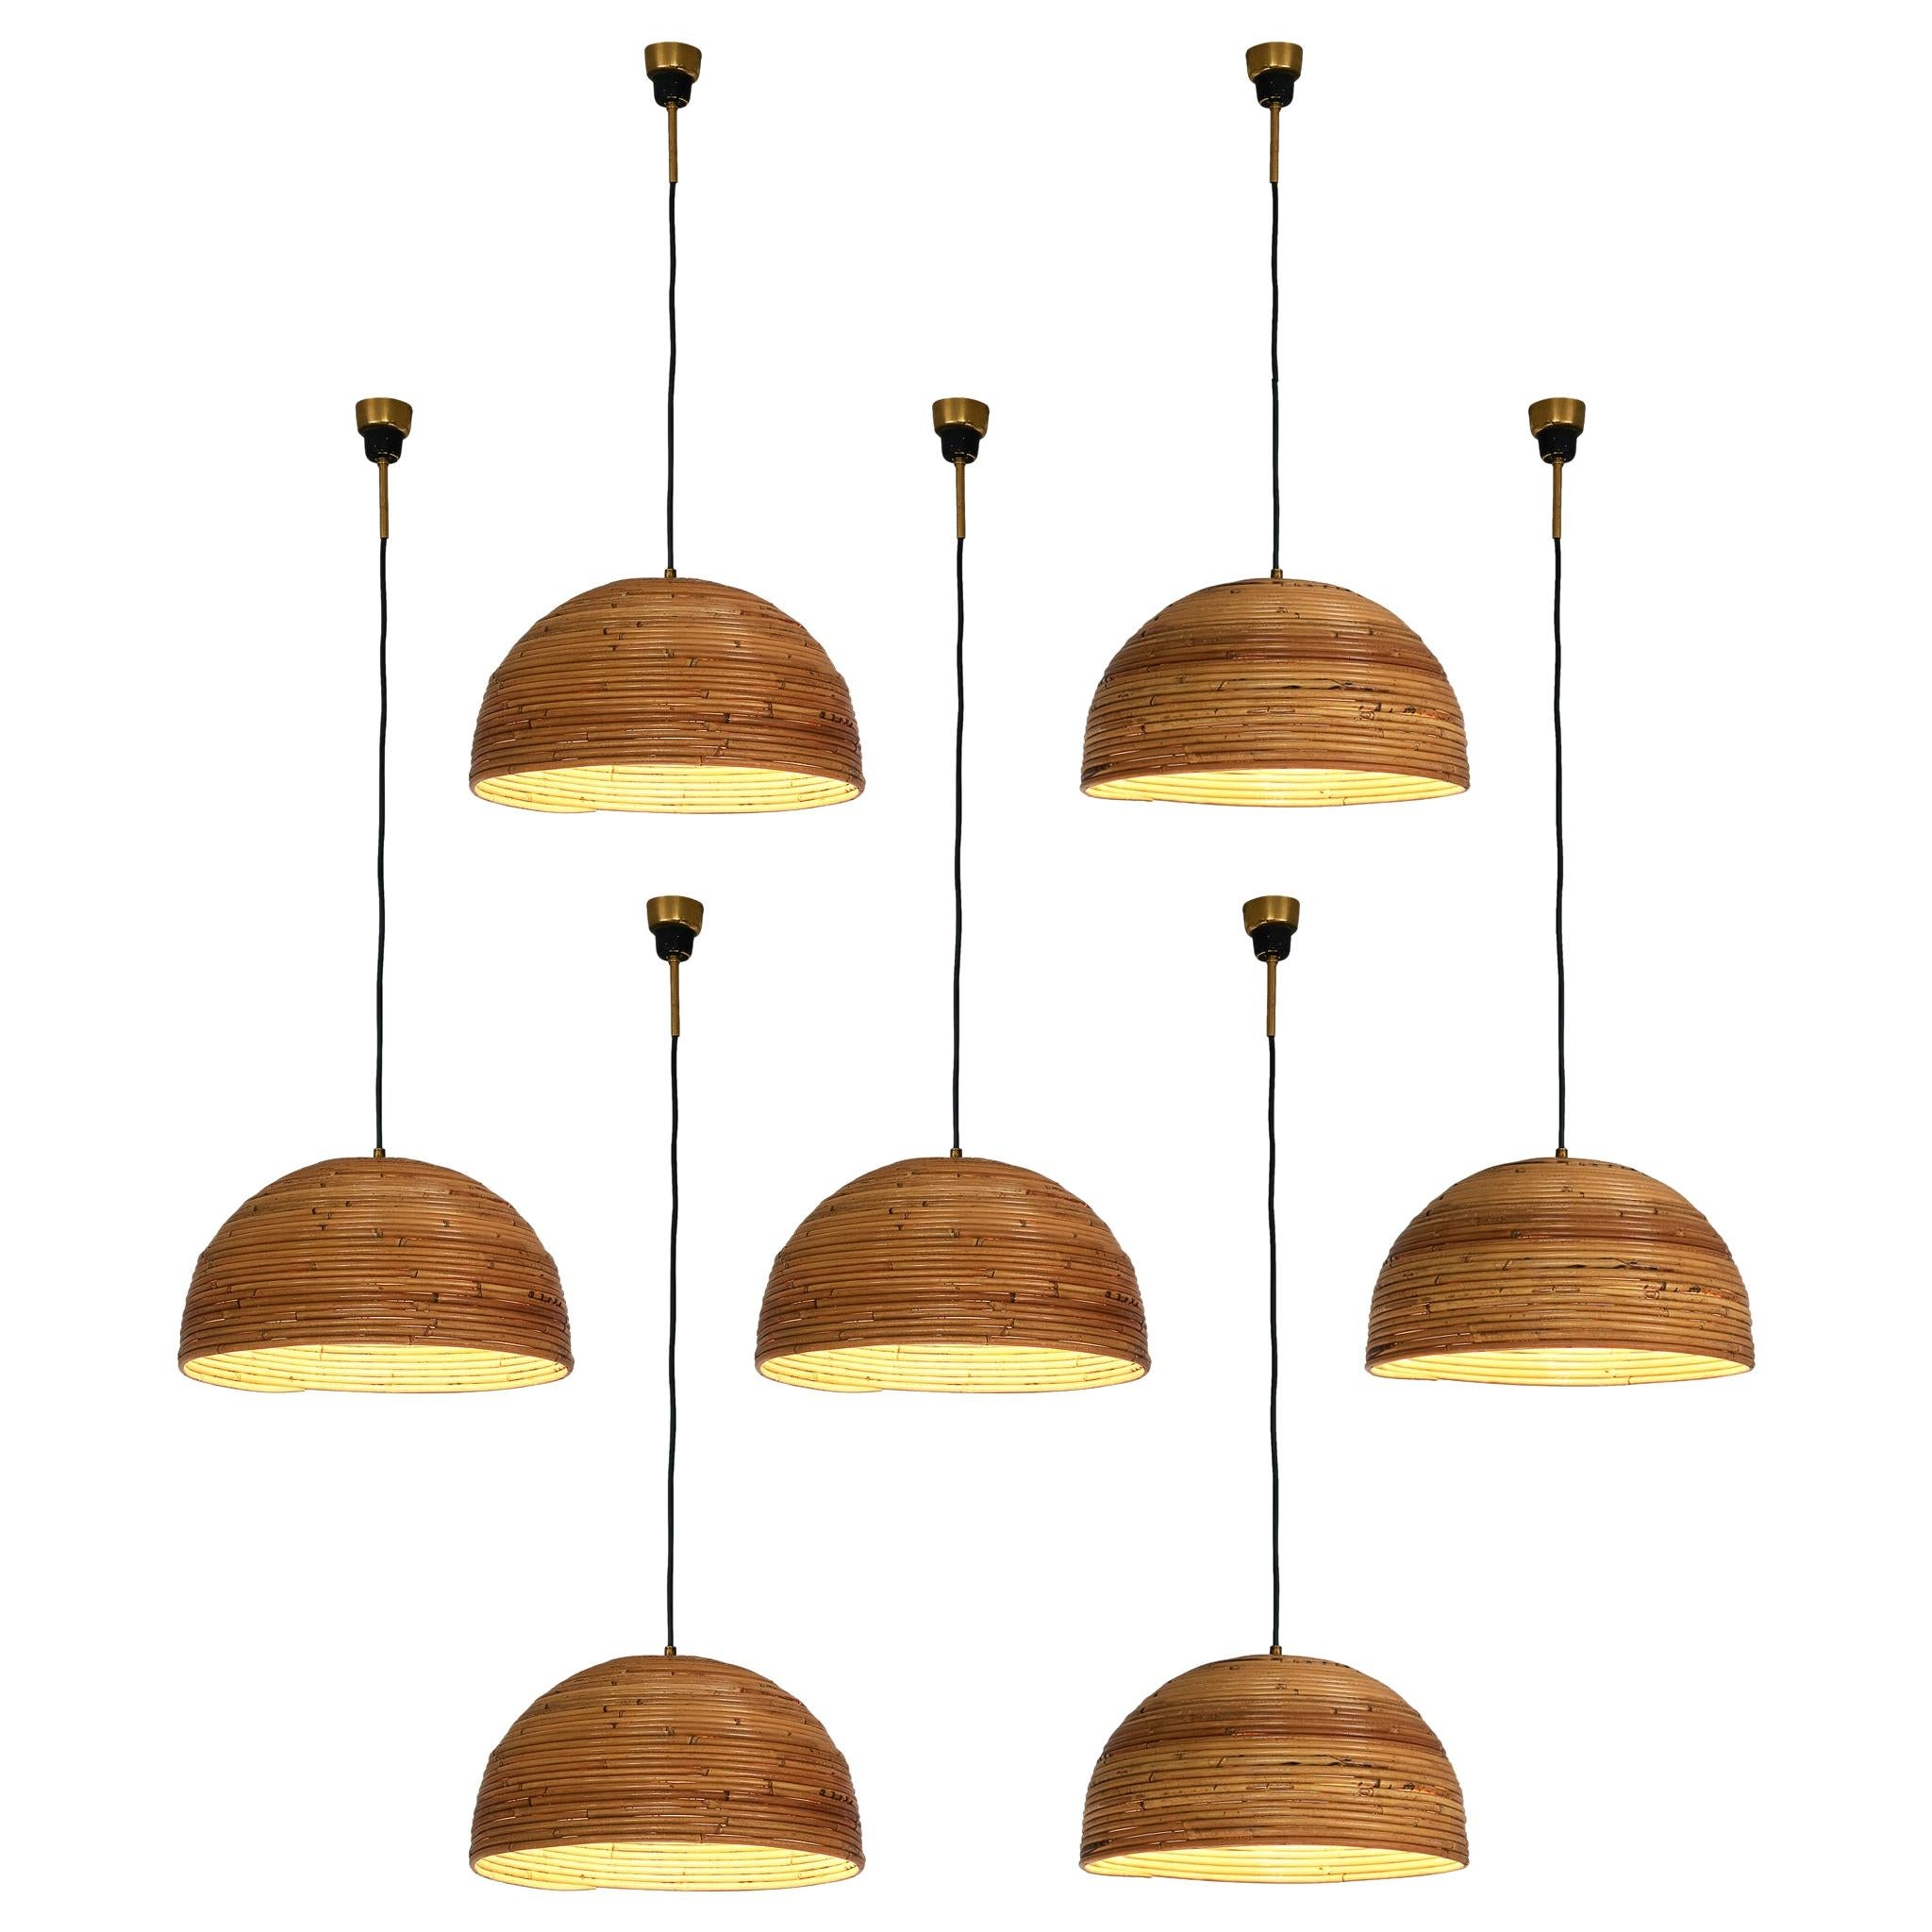 Dome Pendants in Bamboo Bentwood and Brass